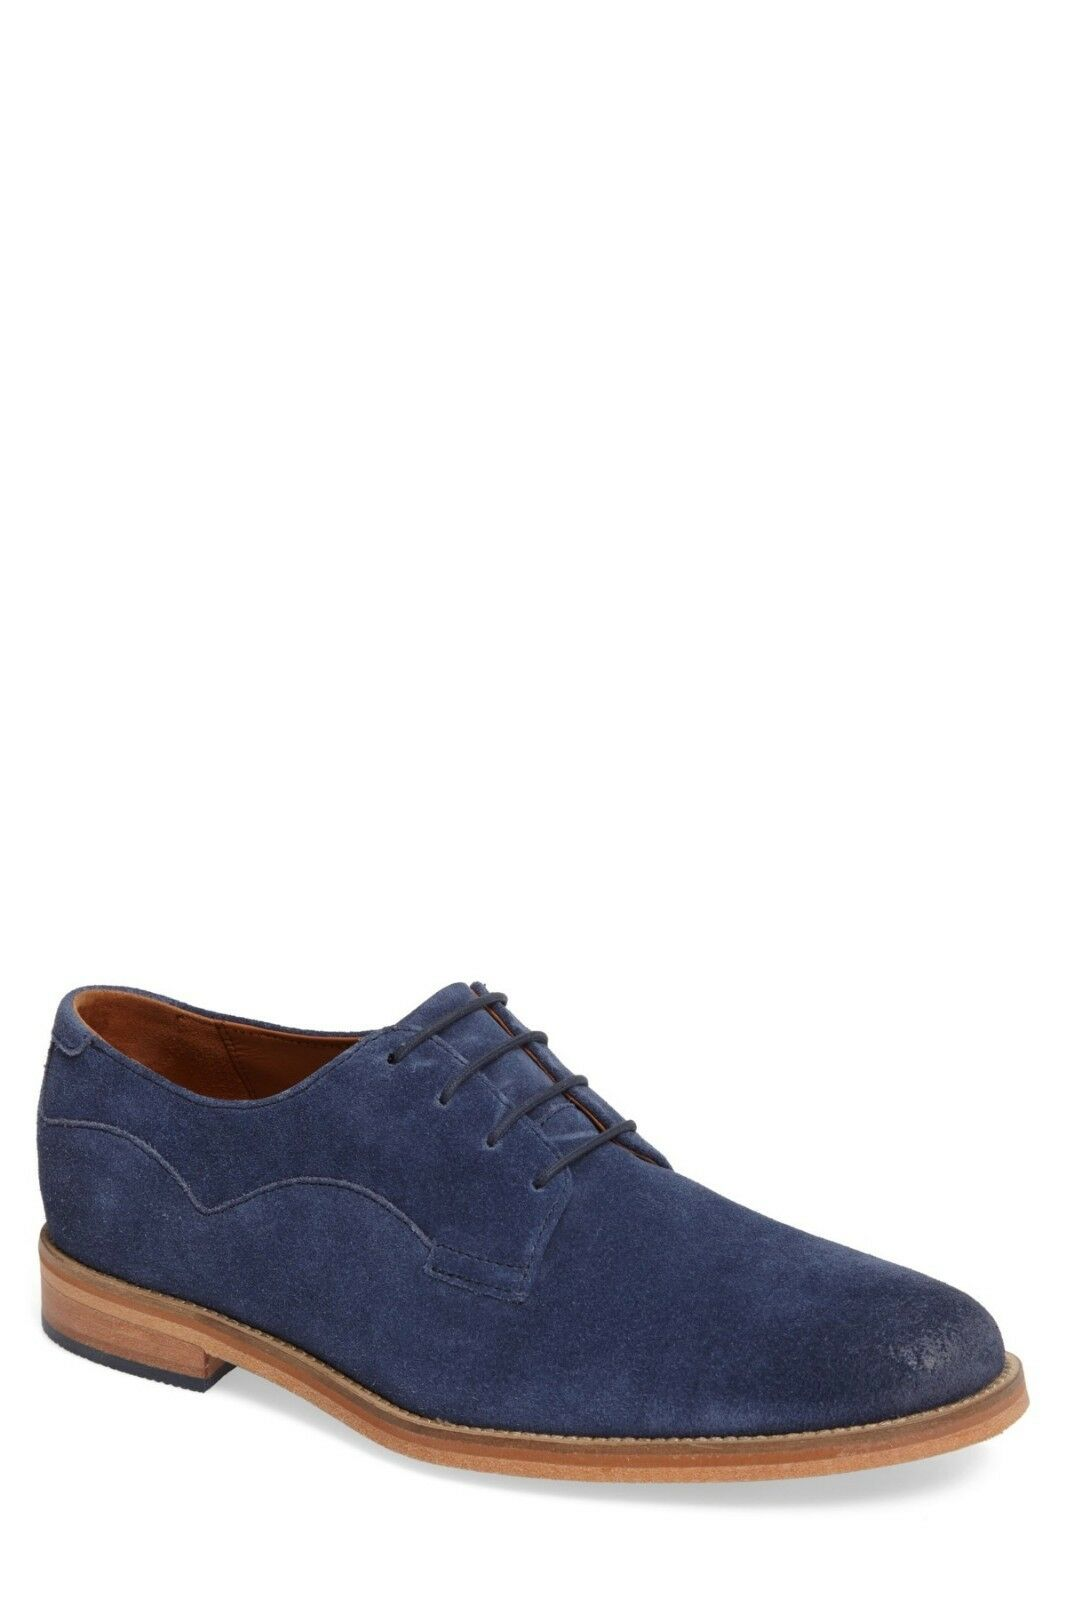 J Shoes Indi Buck Derby, Suede Plain toe, Open lacing Topstitched Size 10.5  198